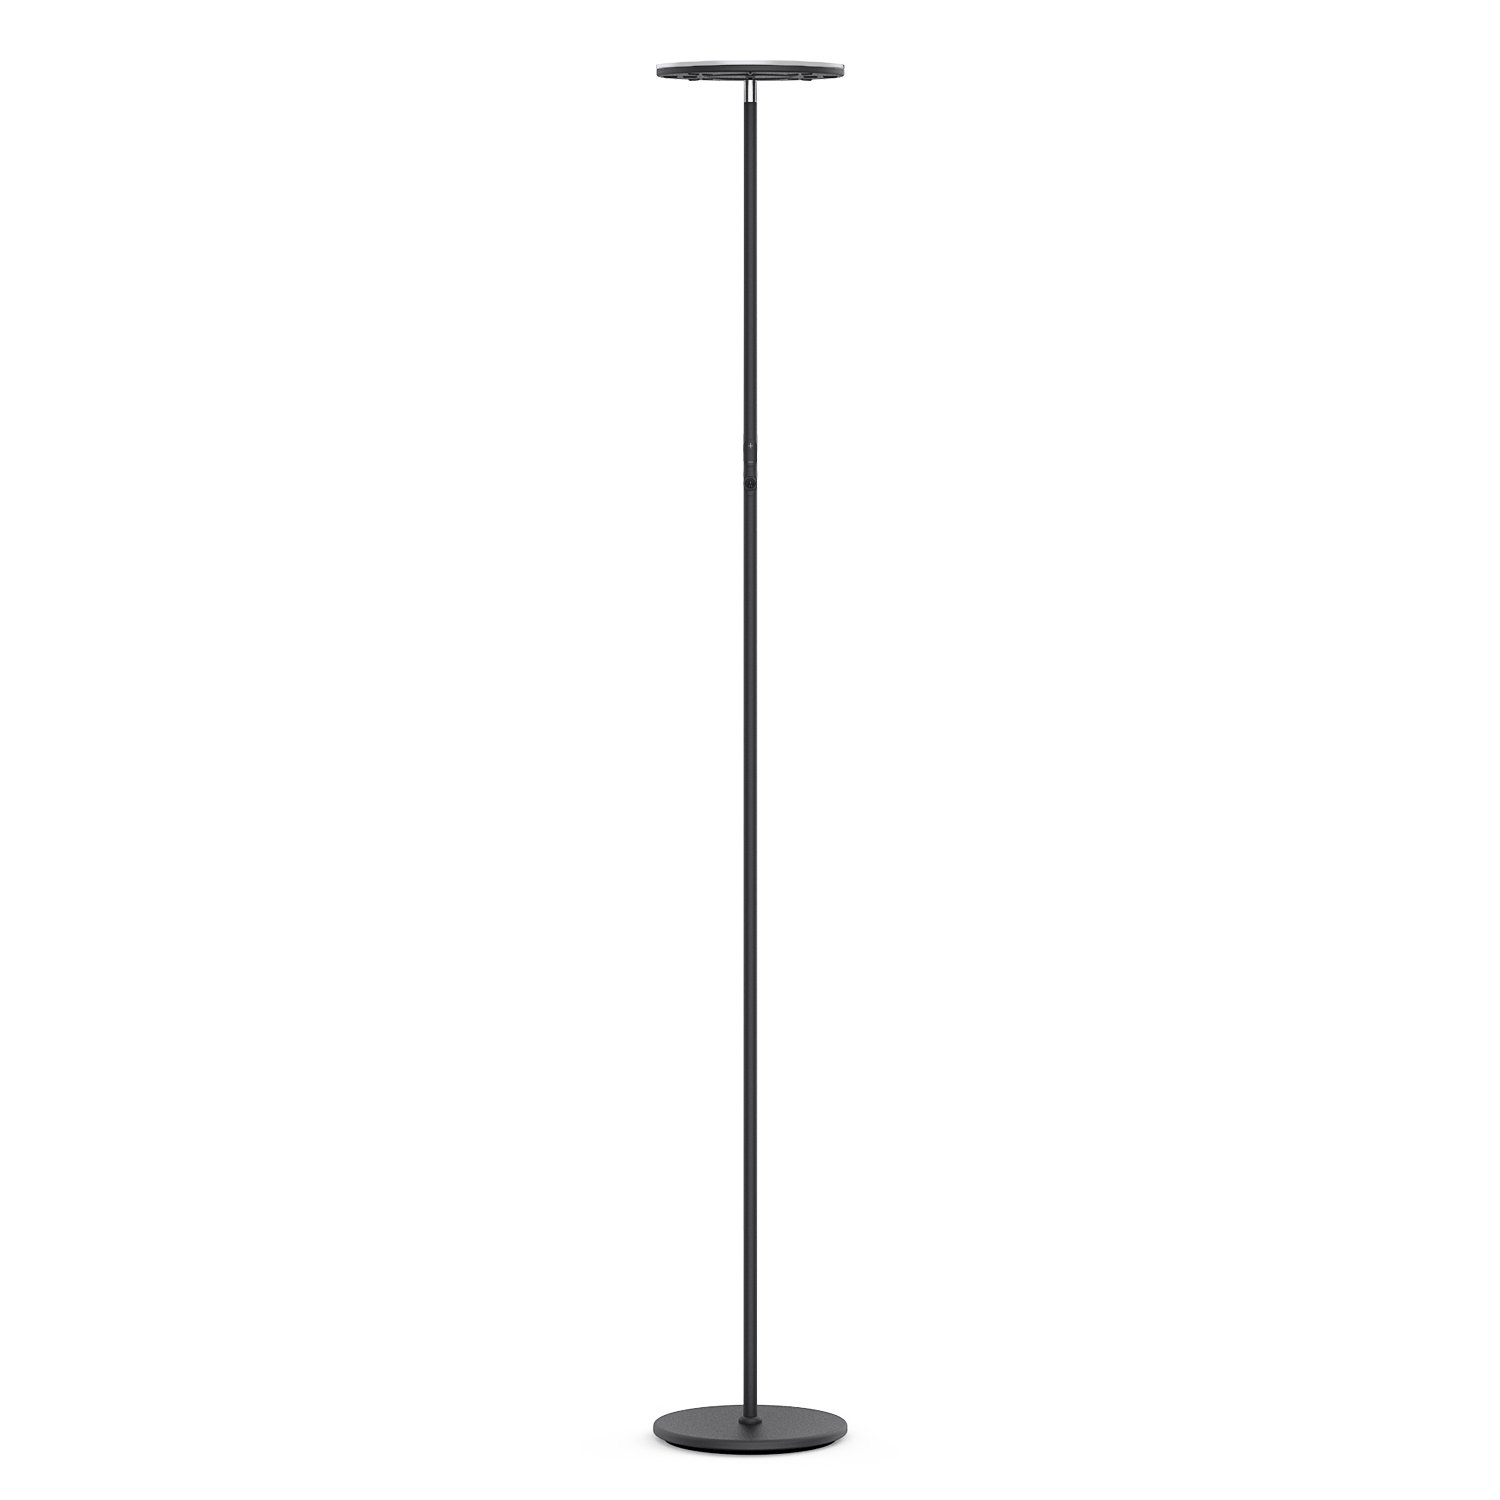 vacnite led torchiere floor lamp smarttouchdimming inch  - vacnite led torchiere floor lamp smarttouchdimming inch lumens watt warm white for bedroom living room office  simplestreamlining black